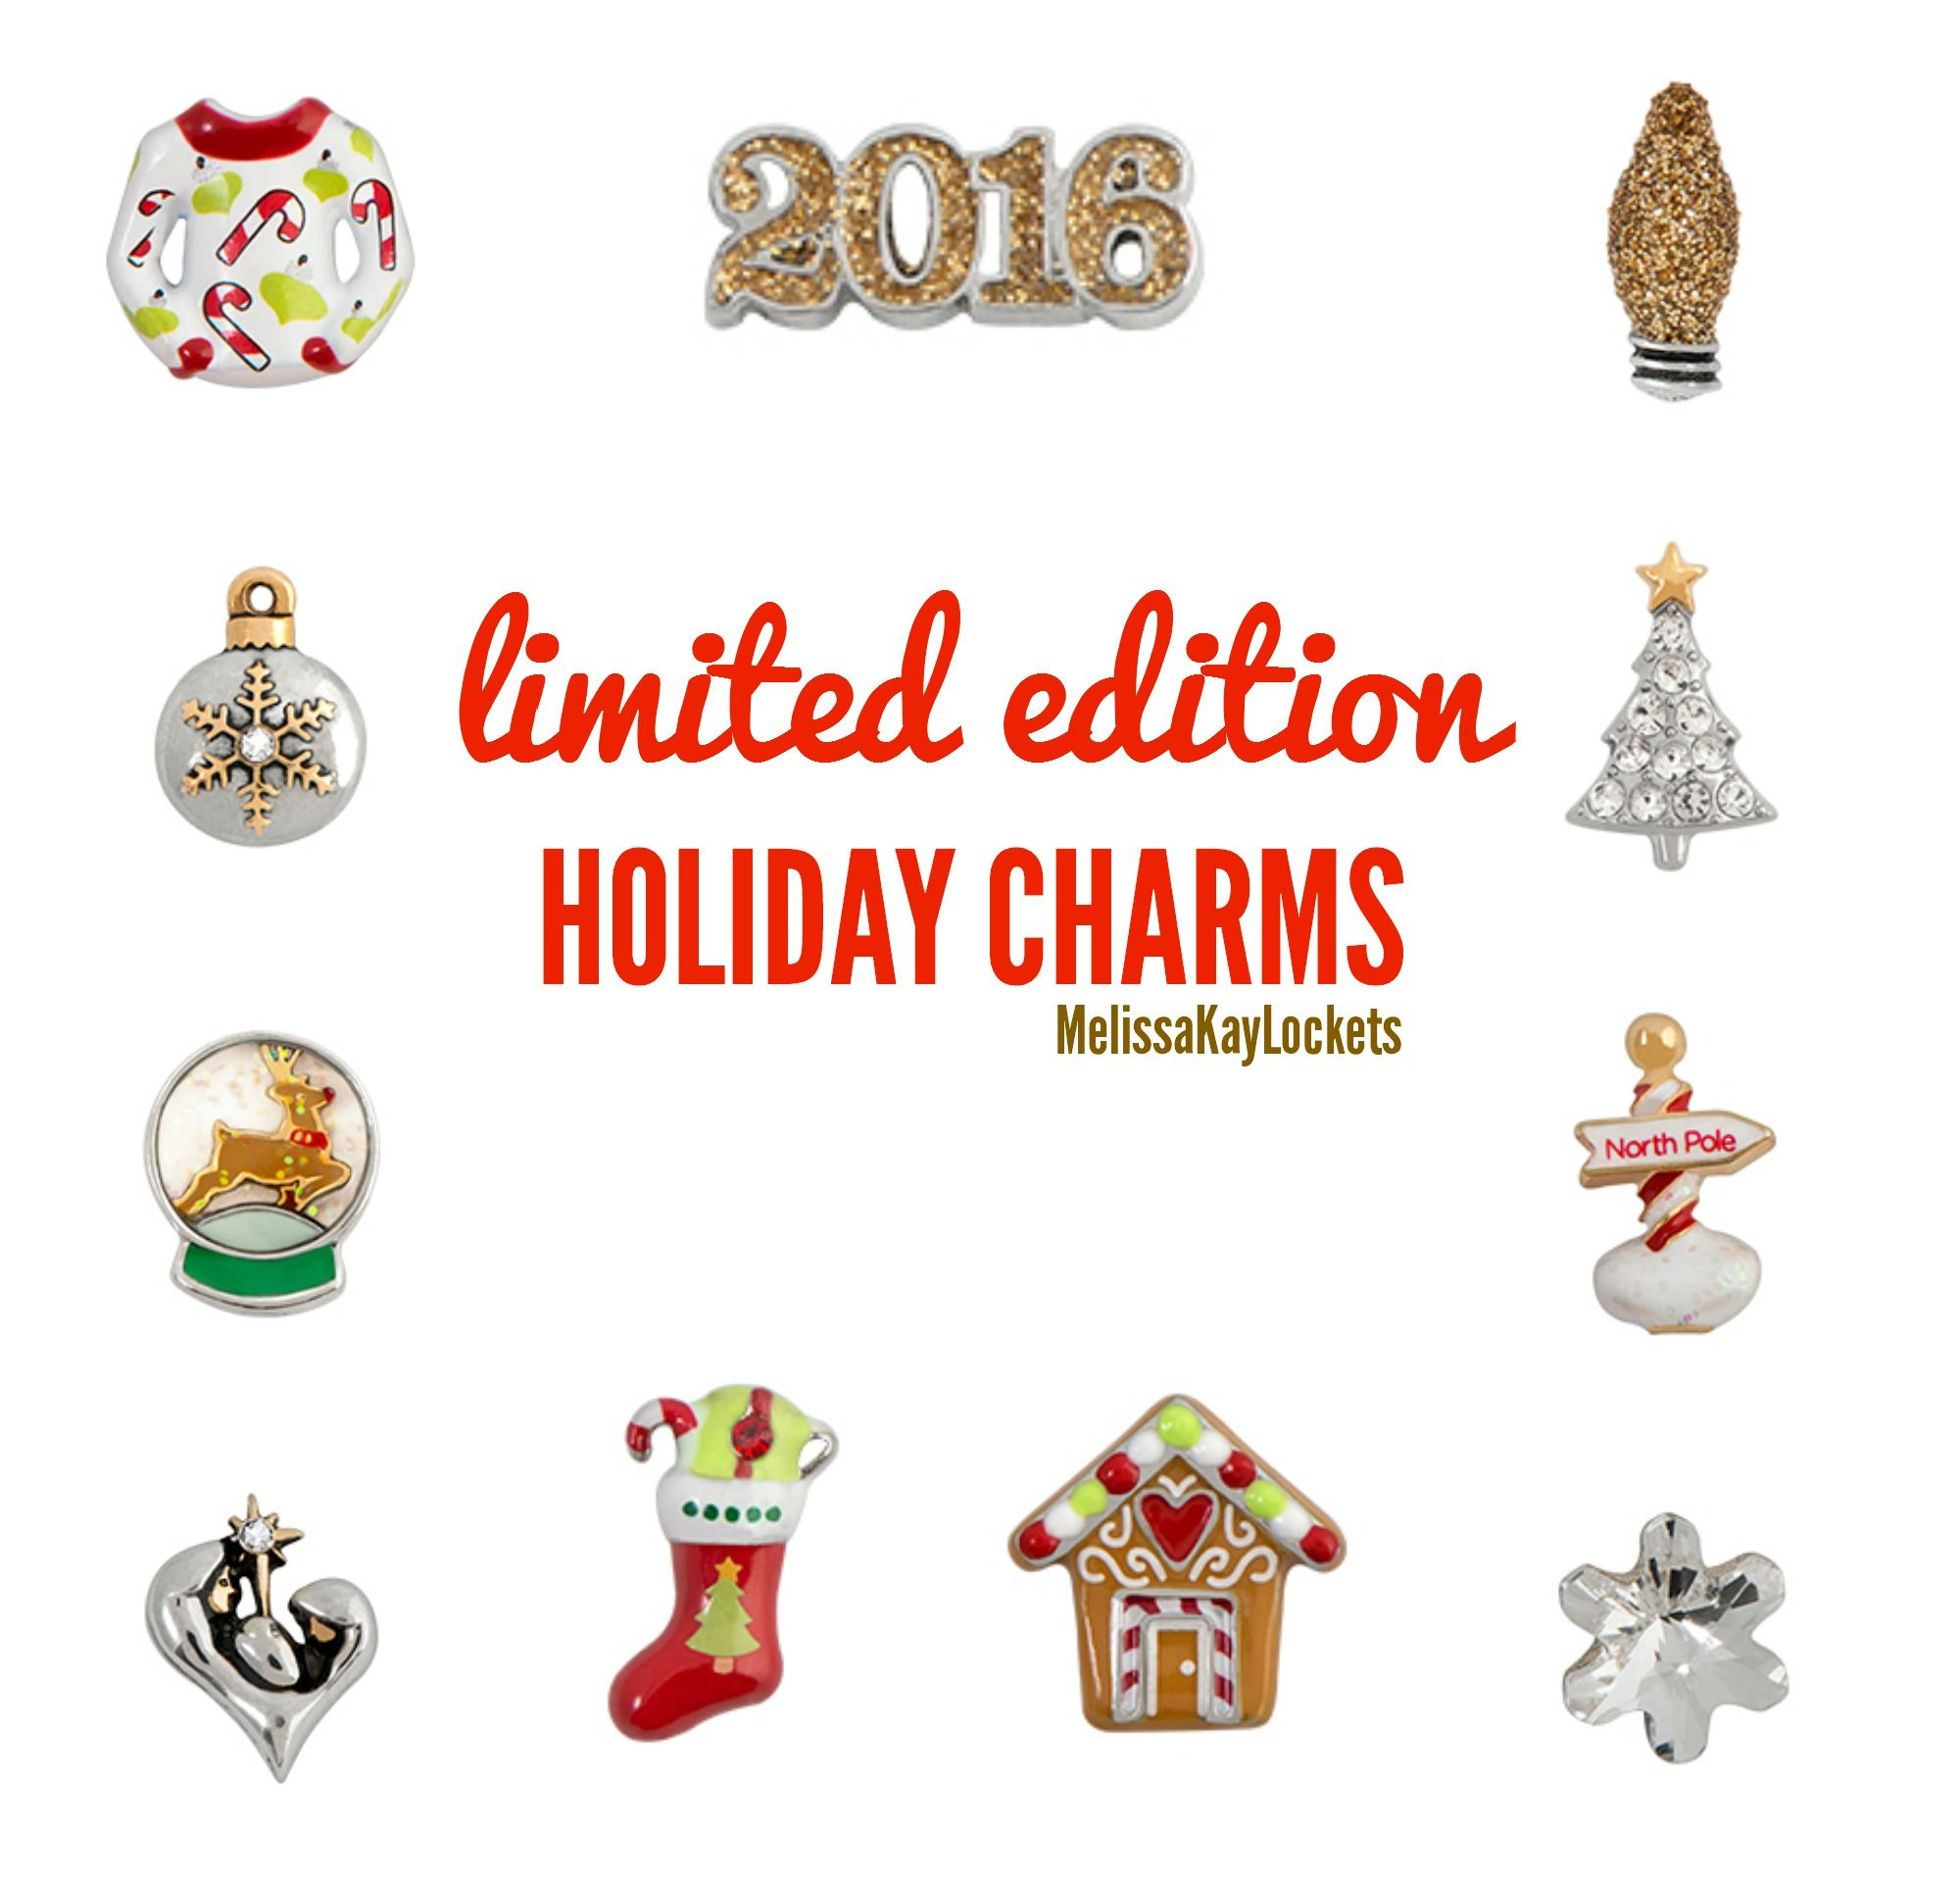 origami owl limited edition 2015 holiday charms